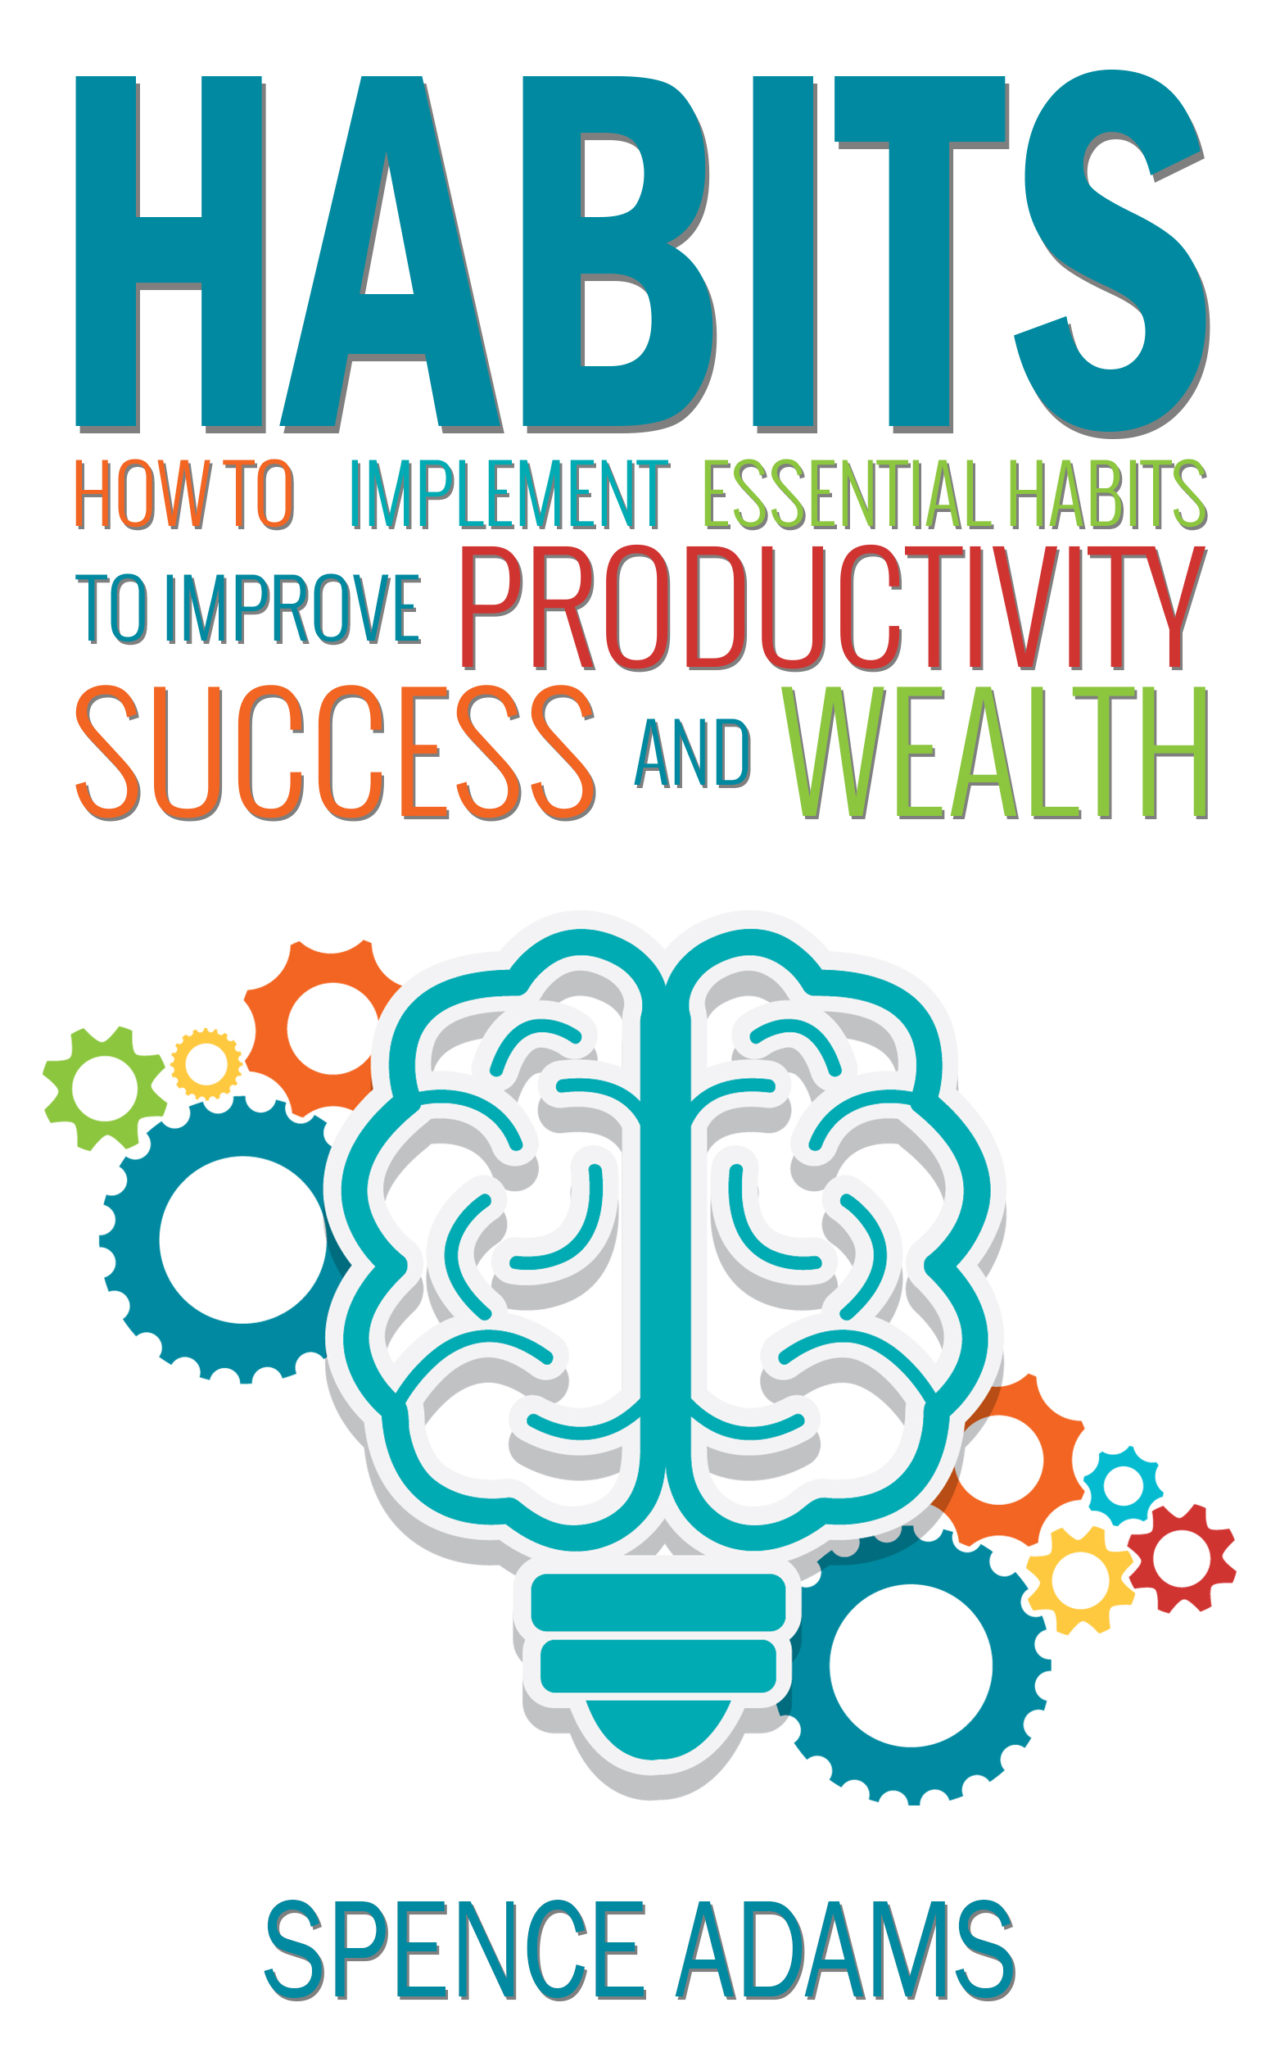 Habits: How to Implement Essential Habits to Improve Productivity, Success, and Wealth